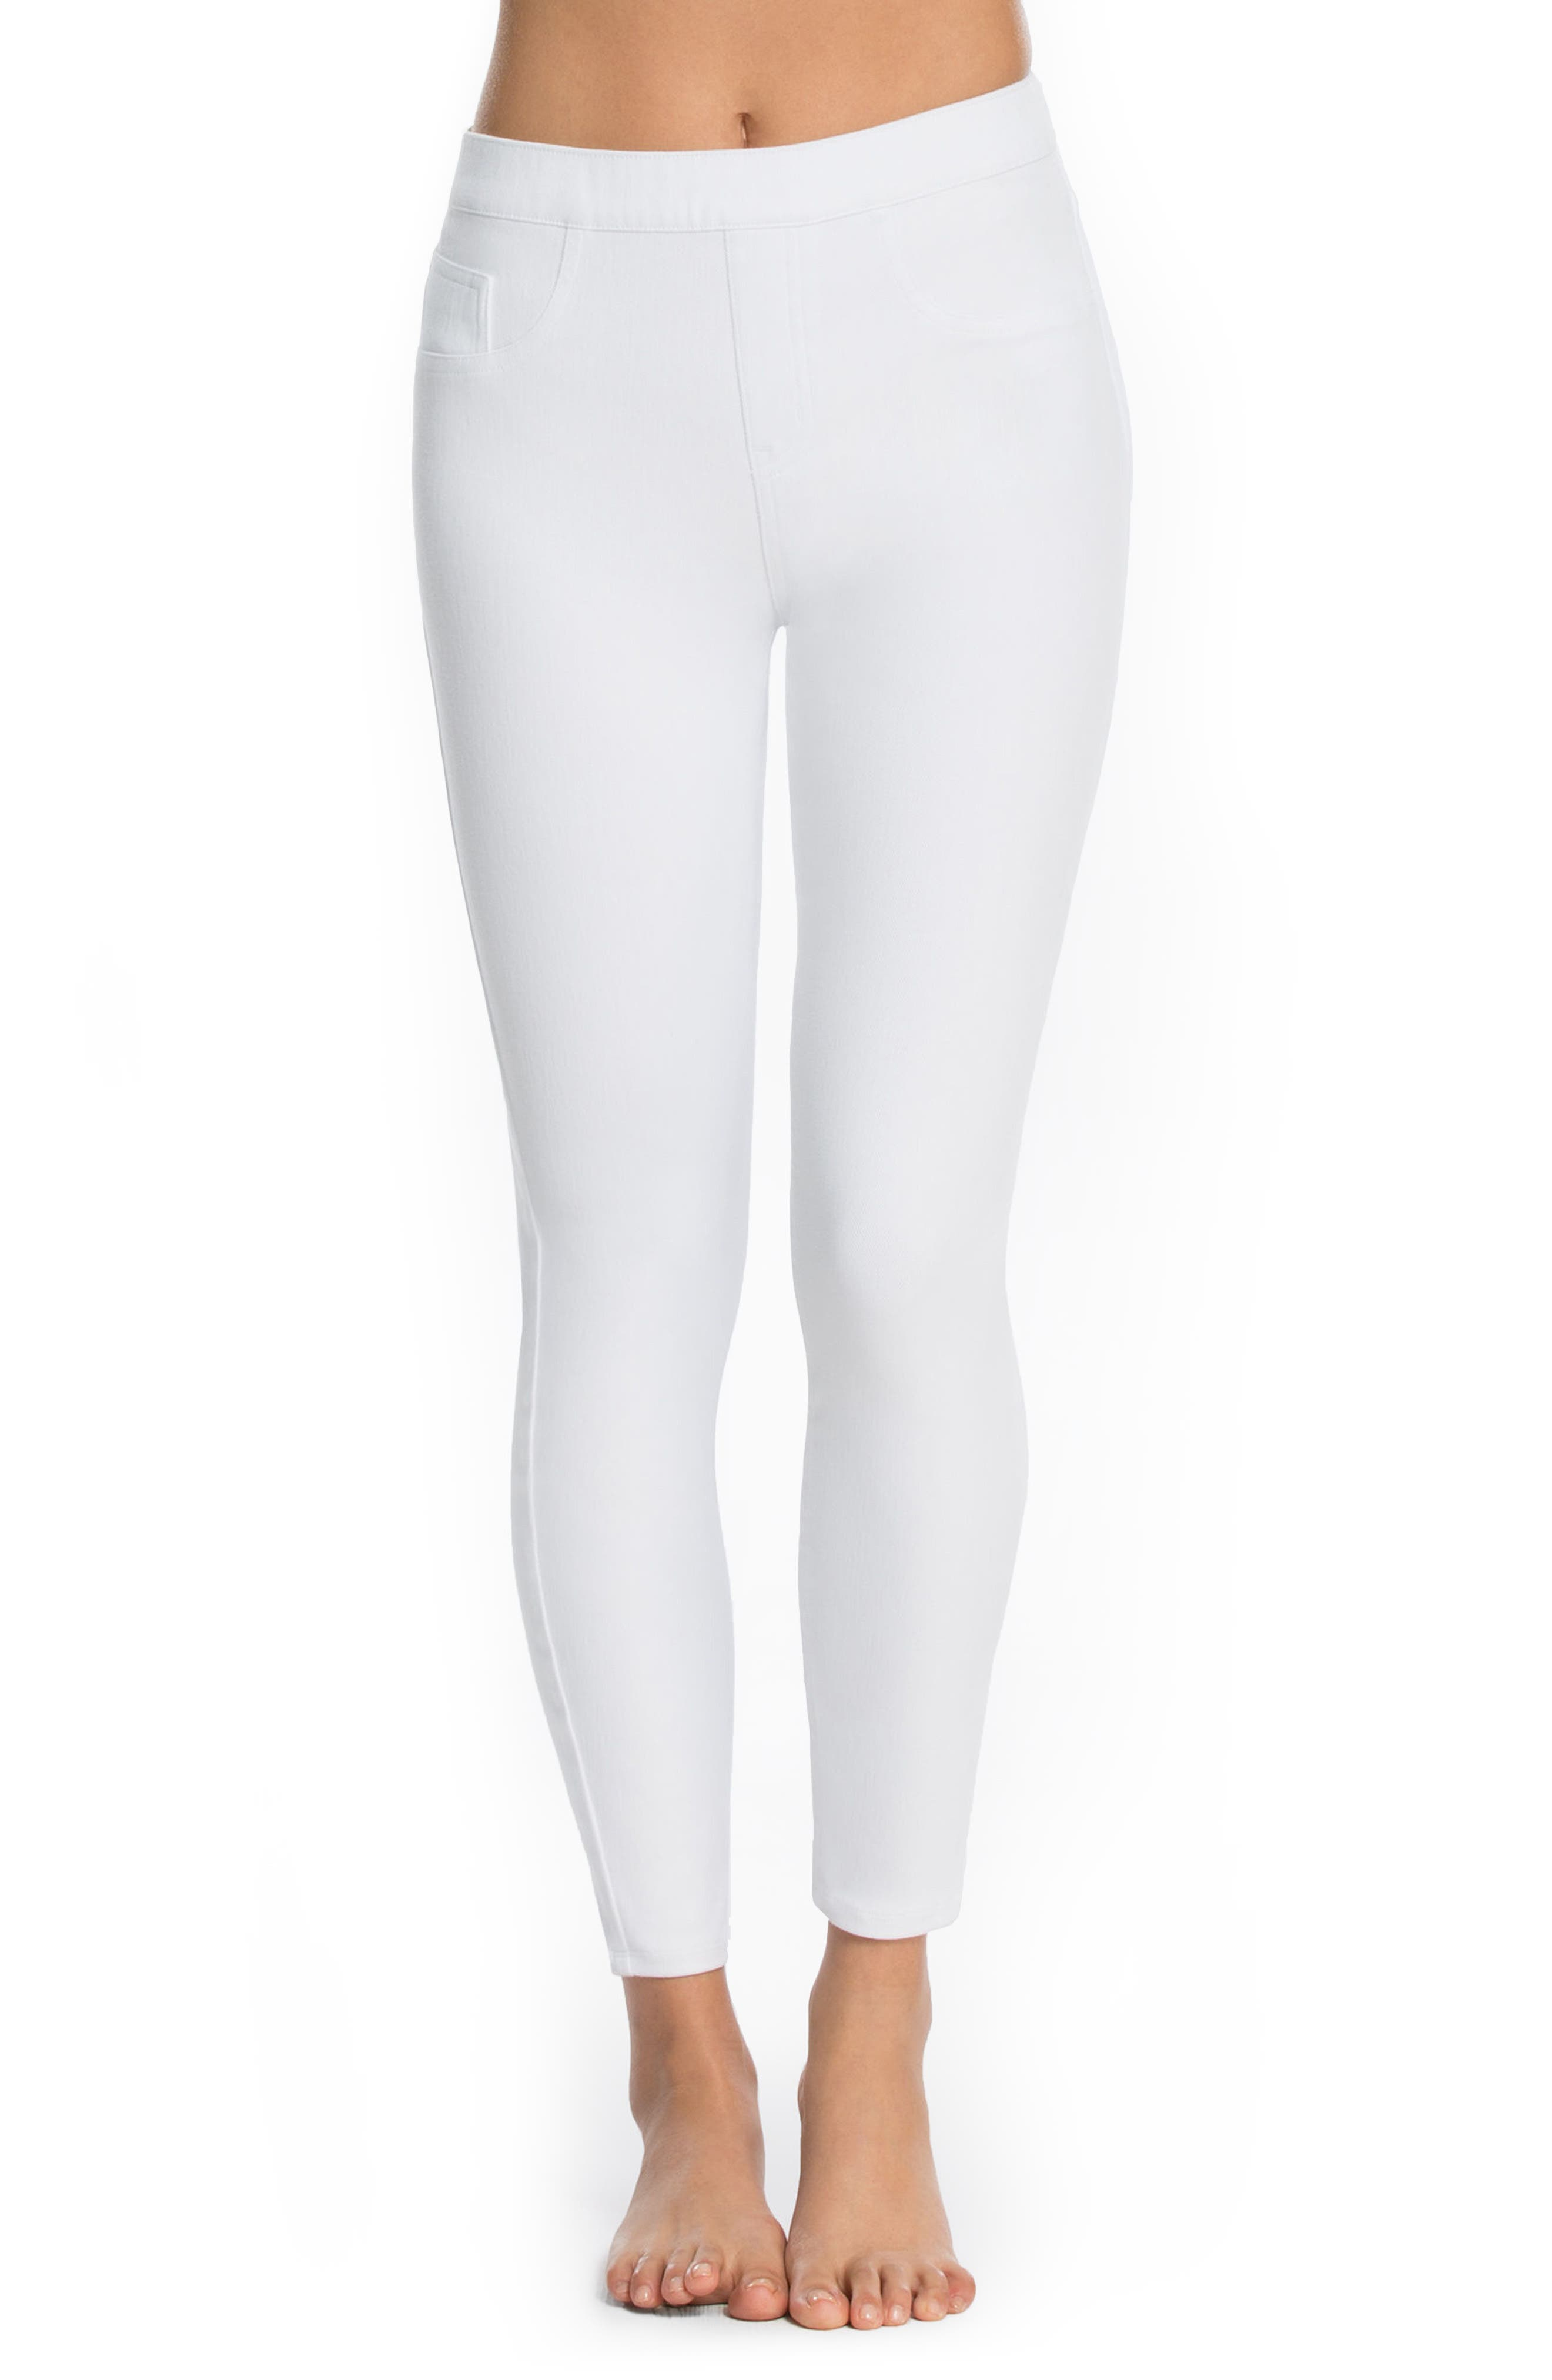 Jean-ish Leggings,                             Main thumbnail 1, color,                             White